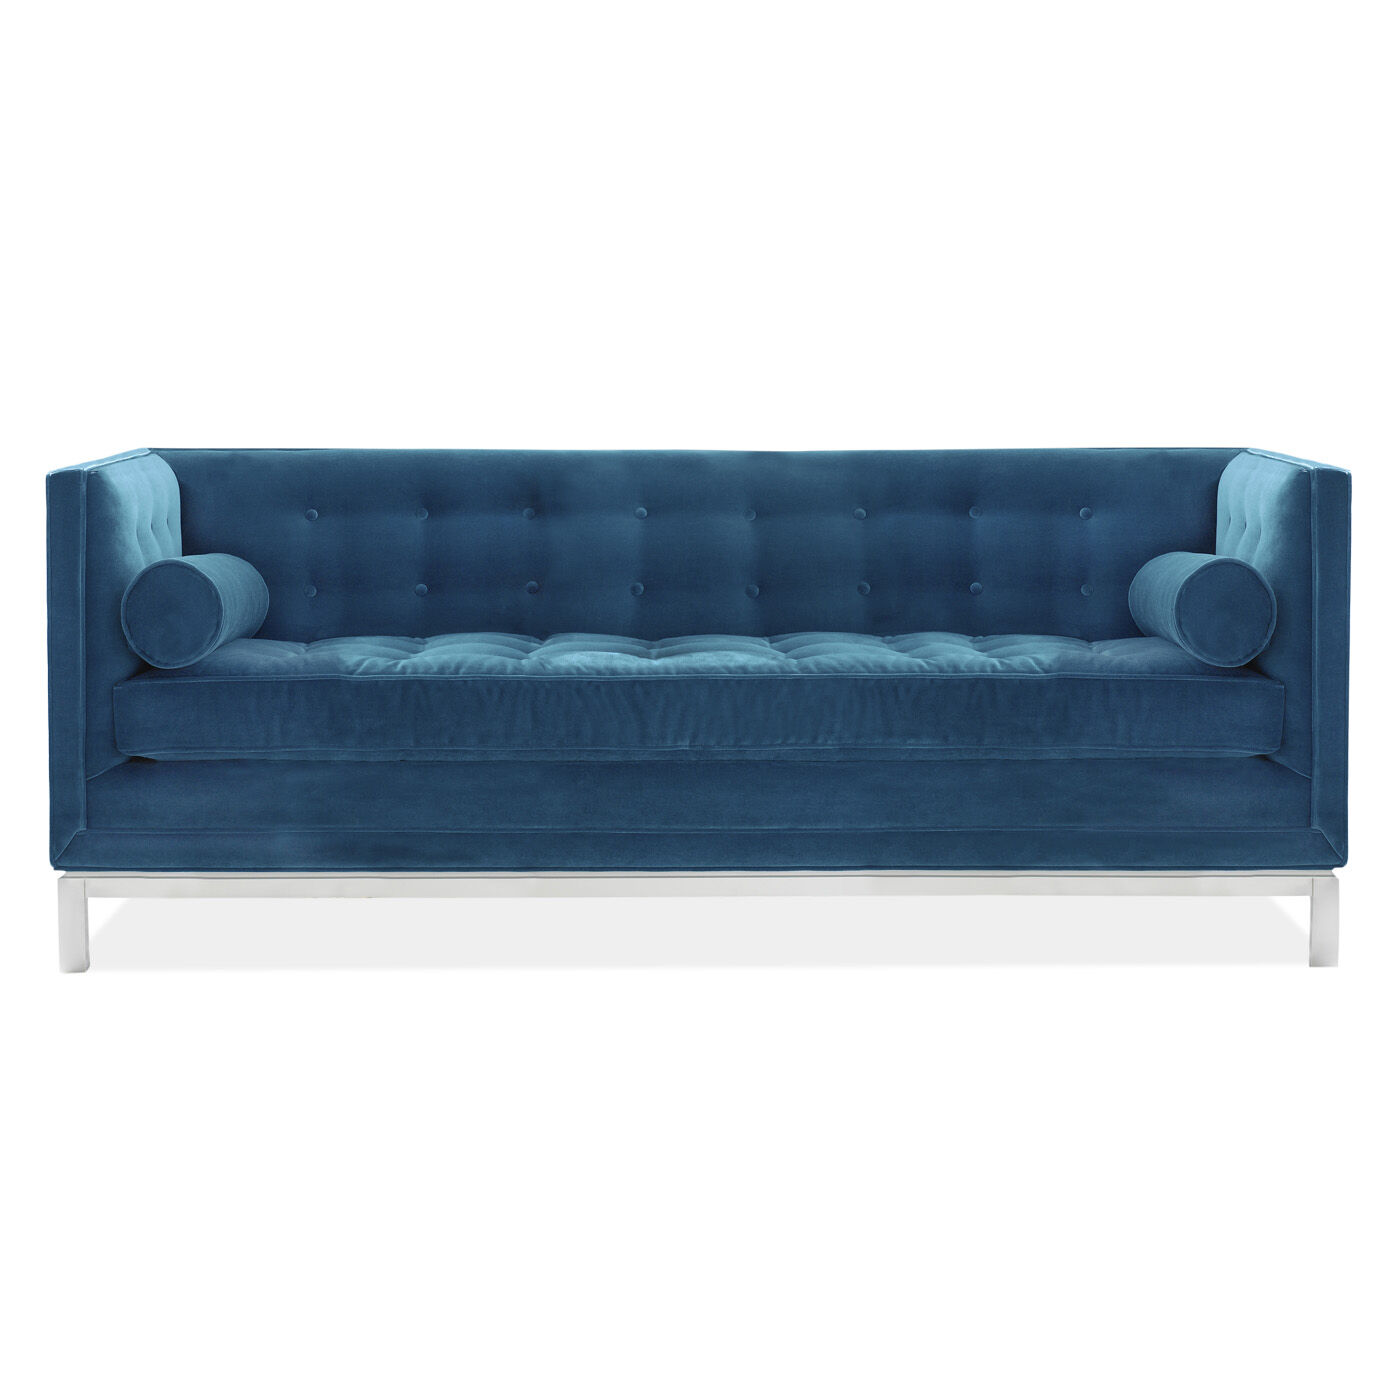 Superb Lampert Sofa, , Hi Res. Jonathan Adler ...